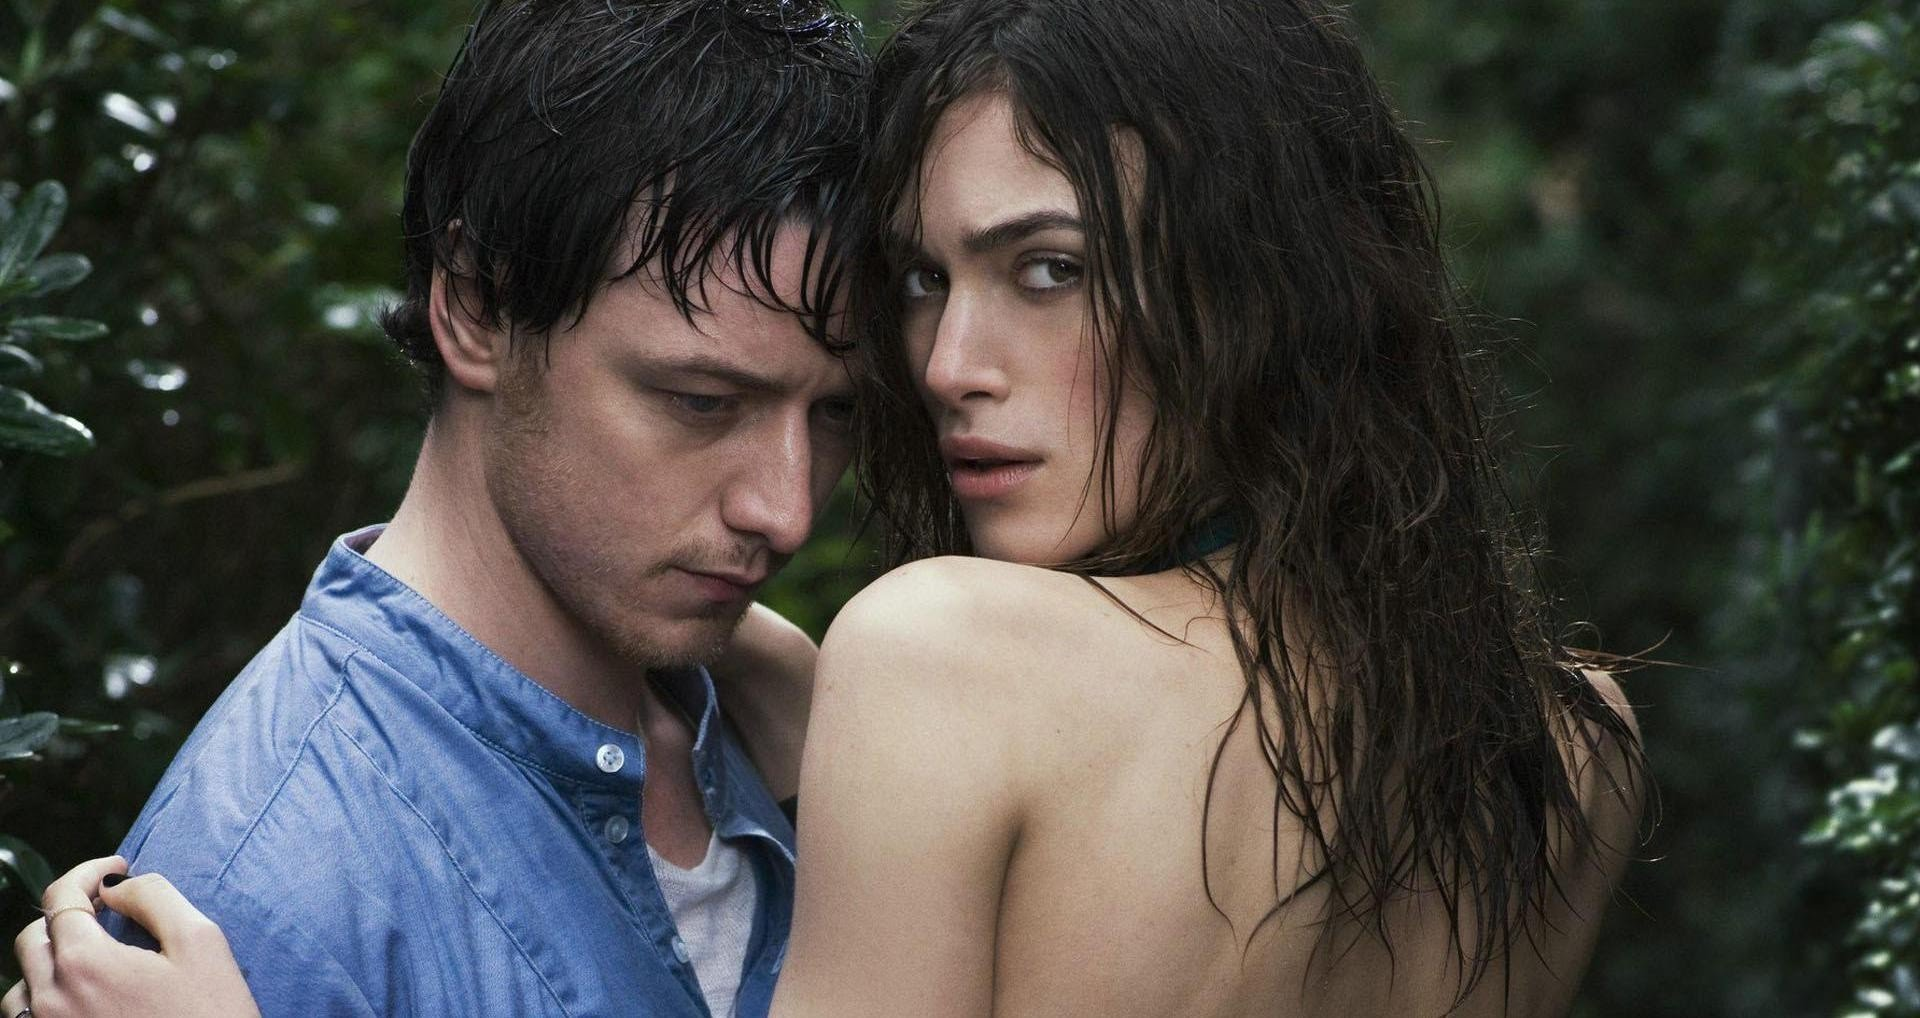 8 Hottest Keira Knightley Movies That Will Not Let You Sleep Keira Knightley Movies